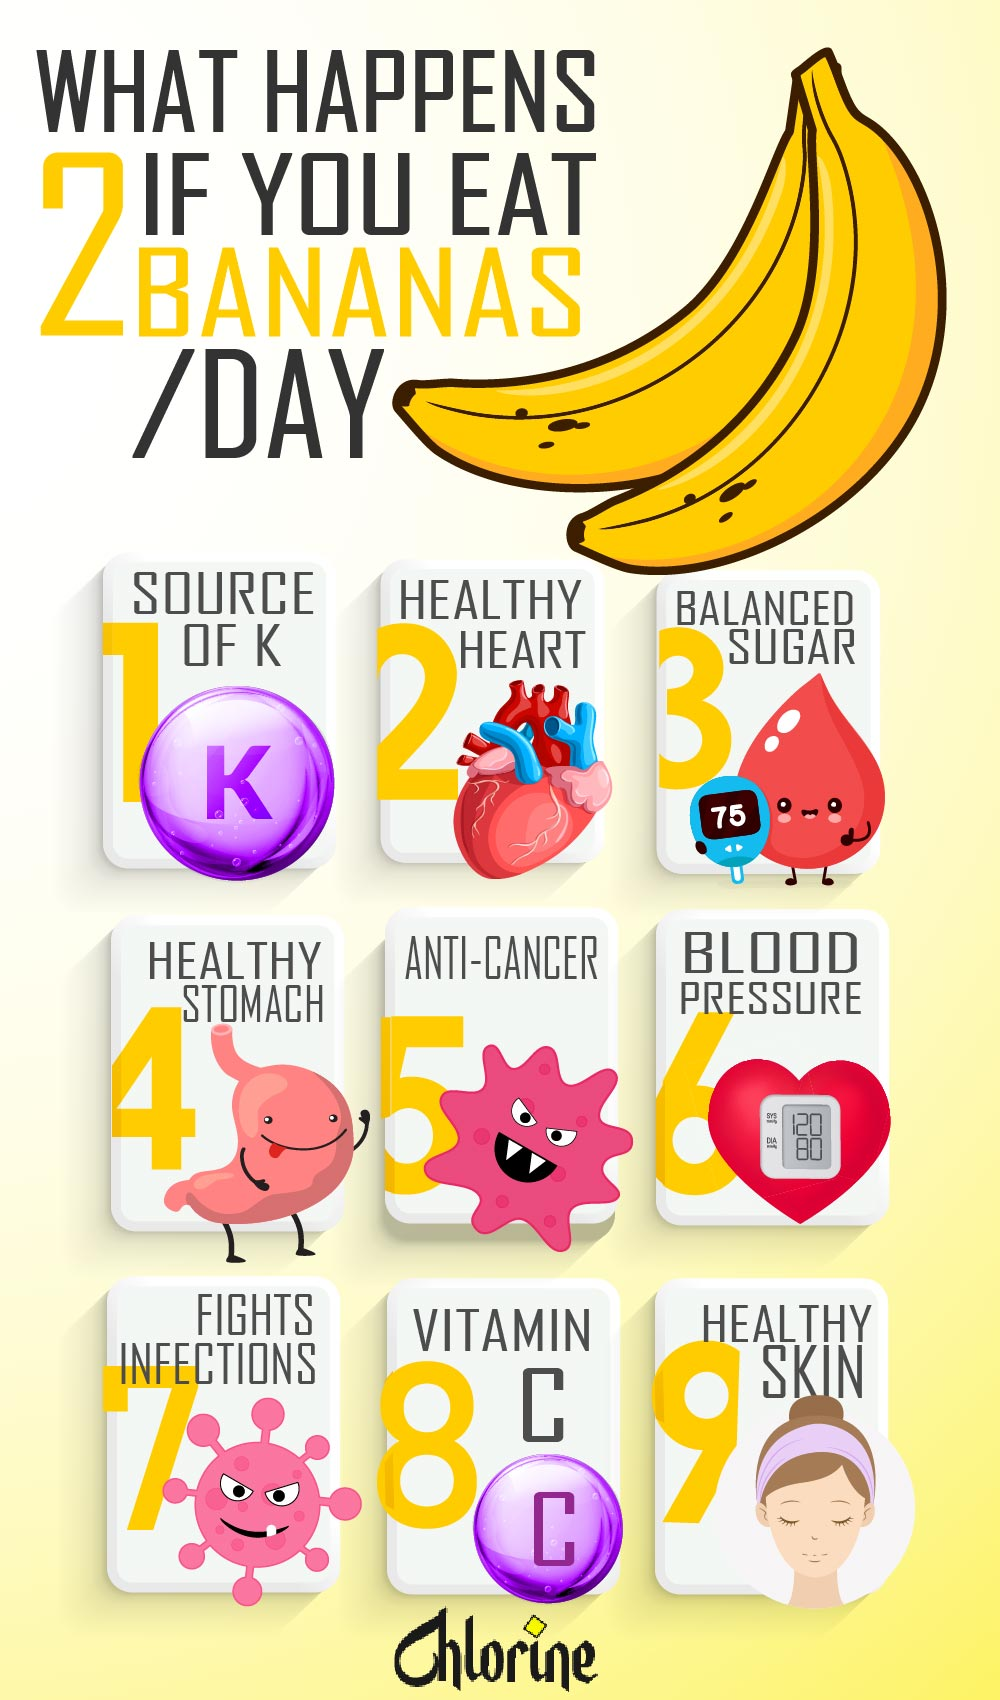 7 Amazing Health Benefits of Bananas, Nutritional Facts & More